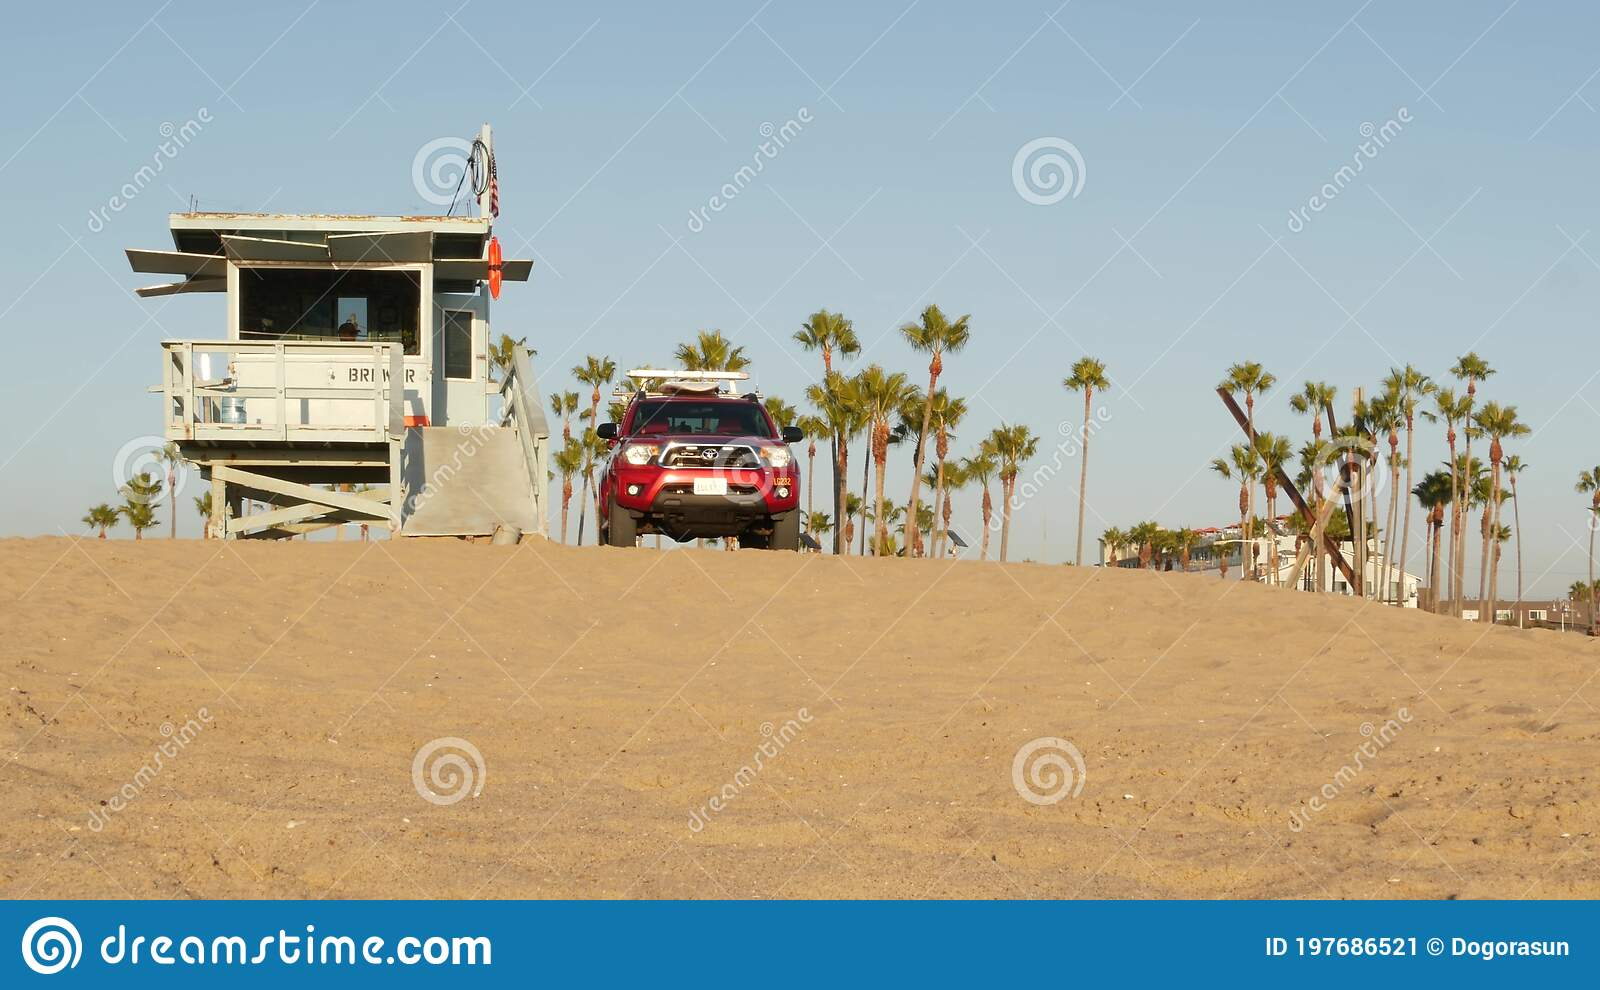 Los Angeles Ca Usa 16 Nov 2019 California Summertime Venice Beach Aesthetic Iconic Retro Wooden Lifeguard Watchtower Baywatch Editorial Photo Image Of Board Illustrative 197686521